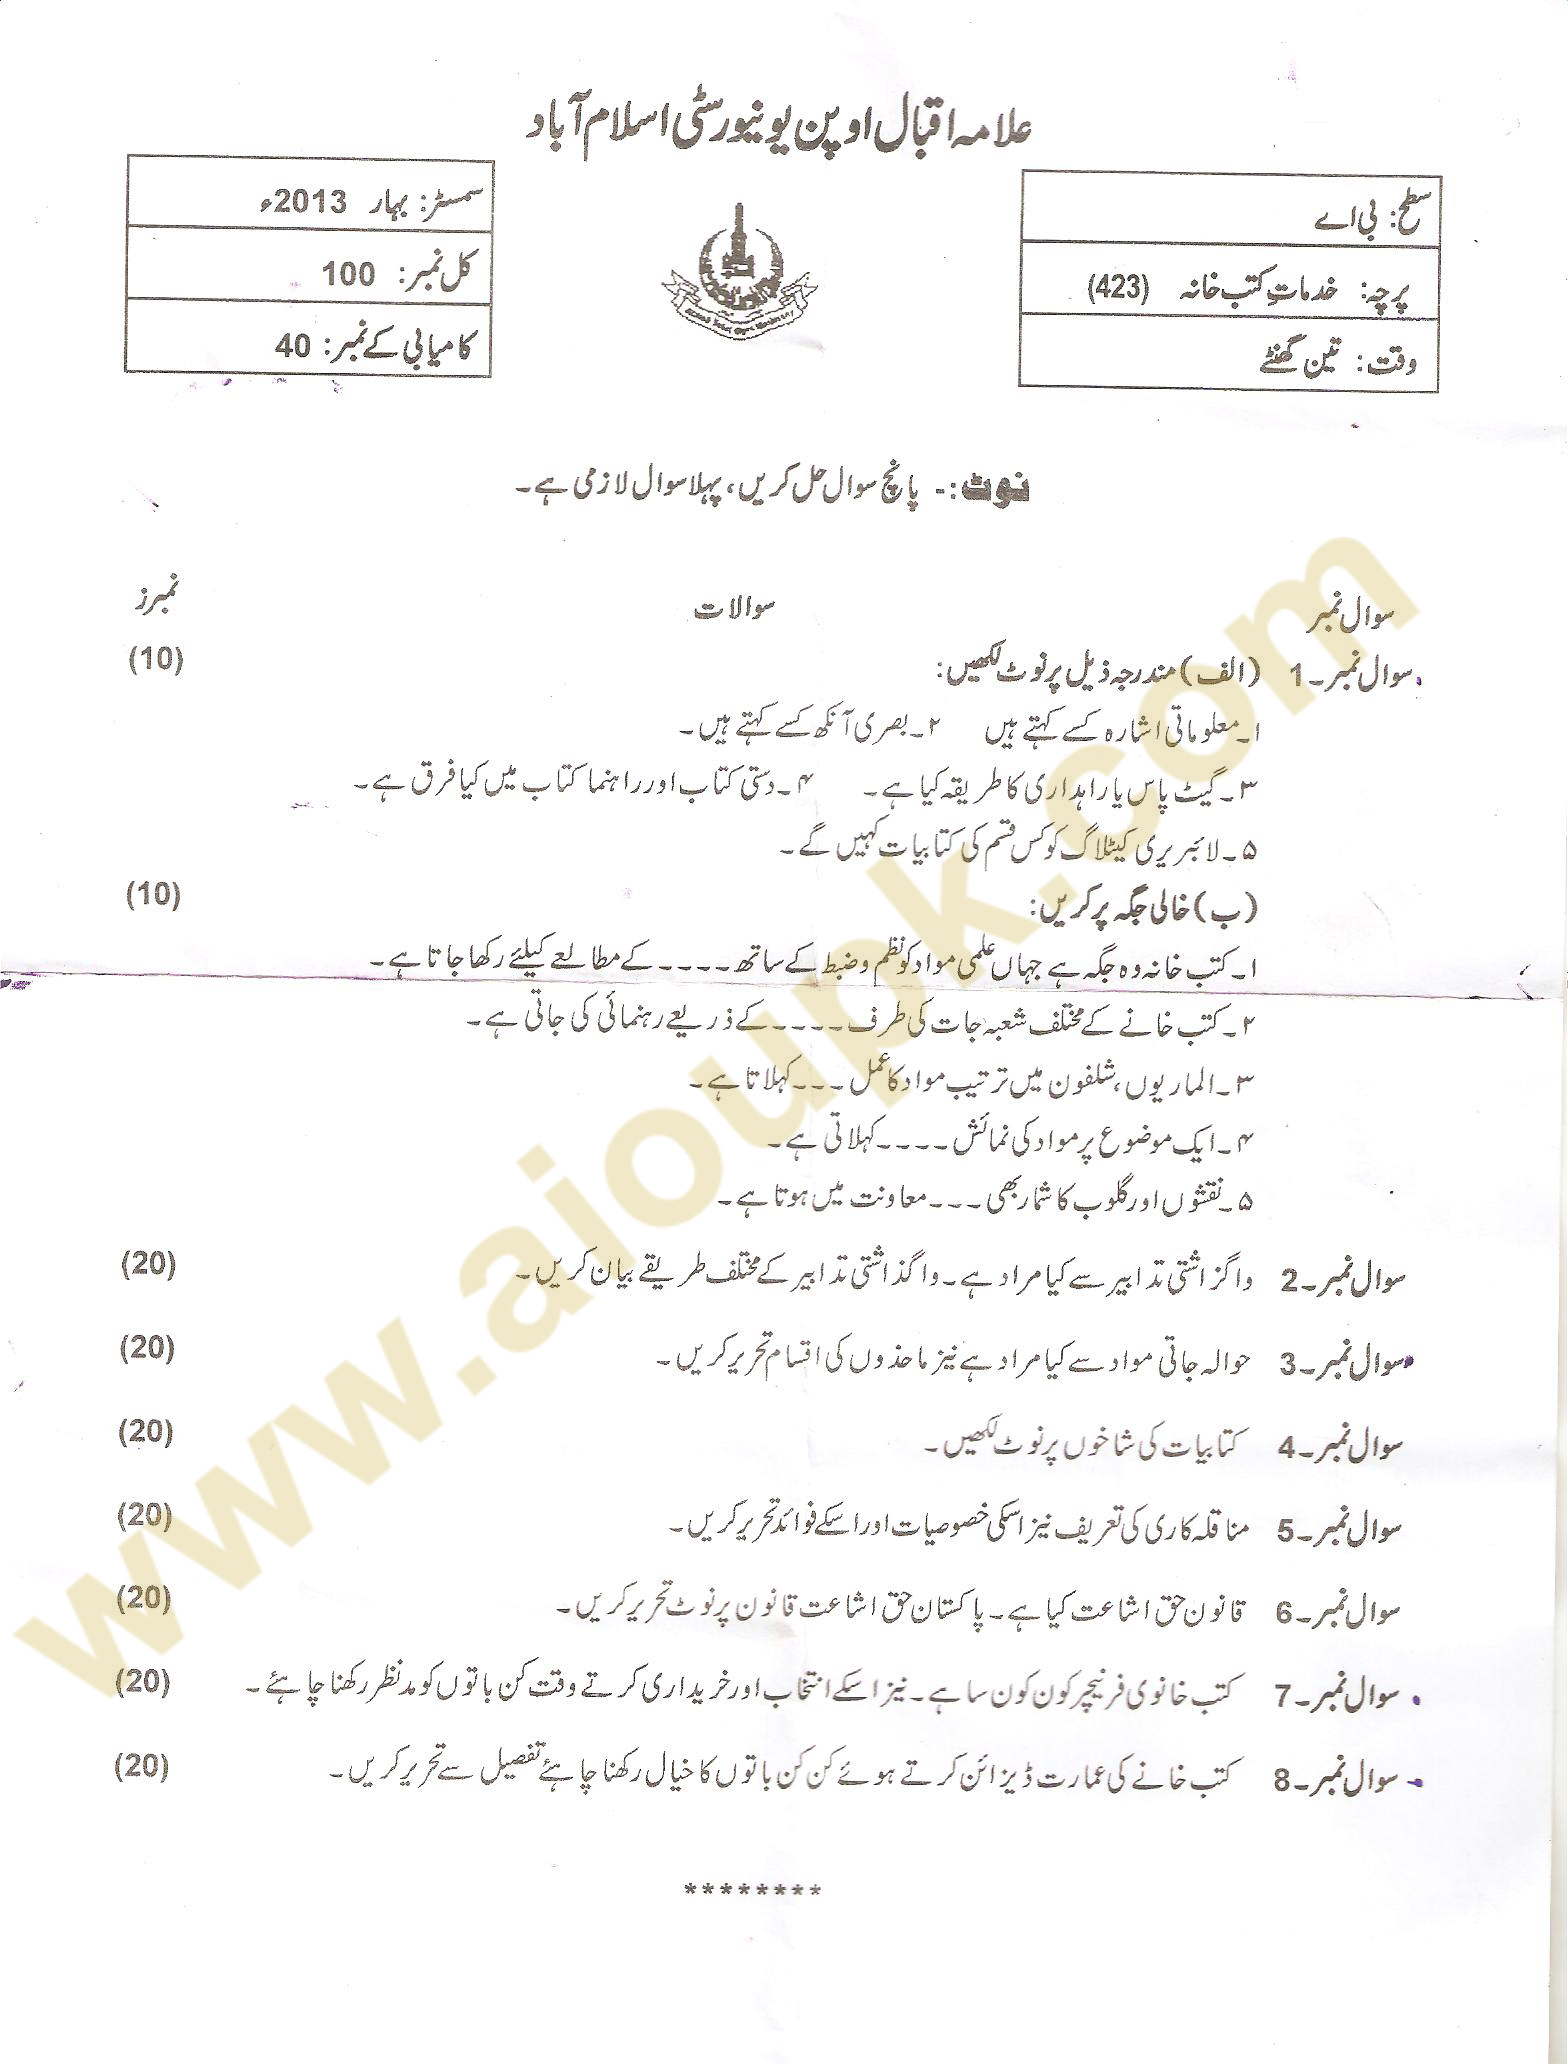 AIOU Old Papers Code: 695